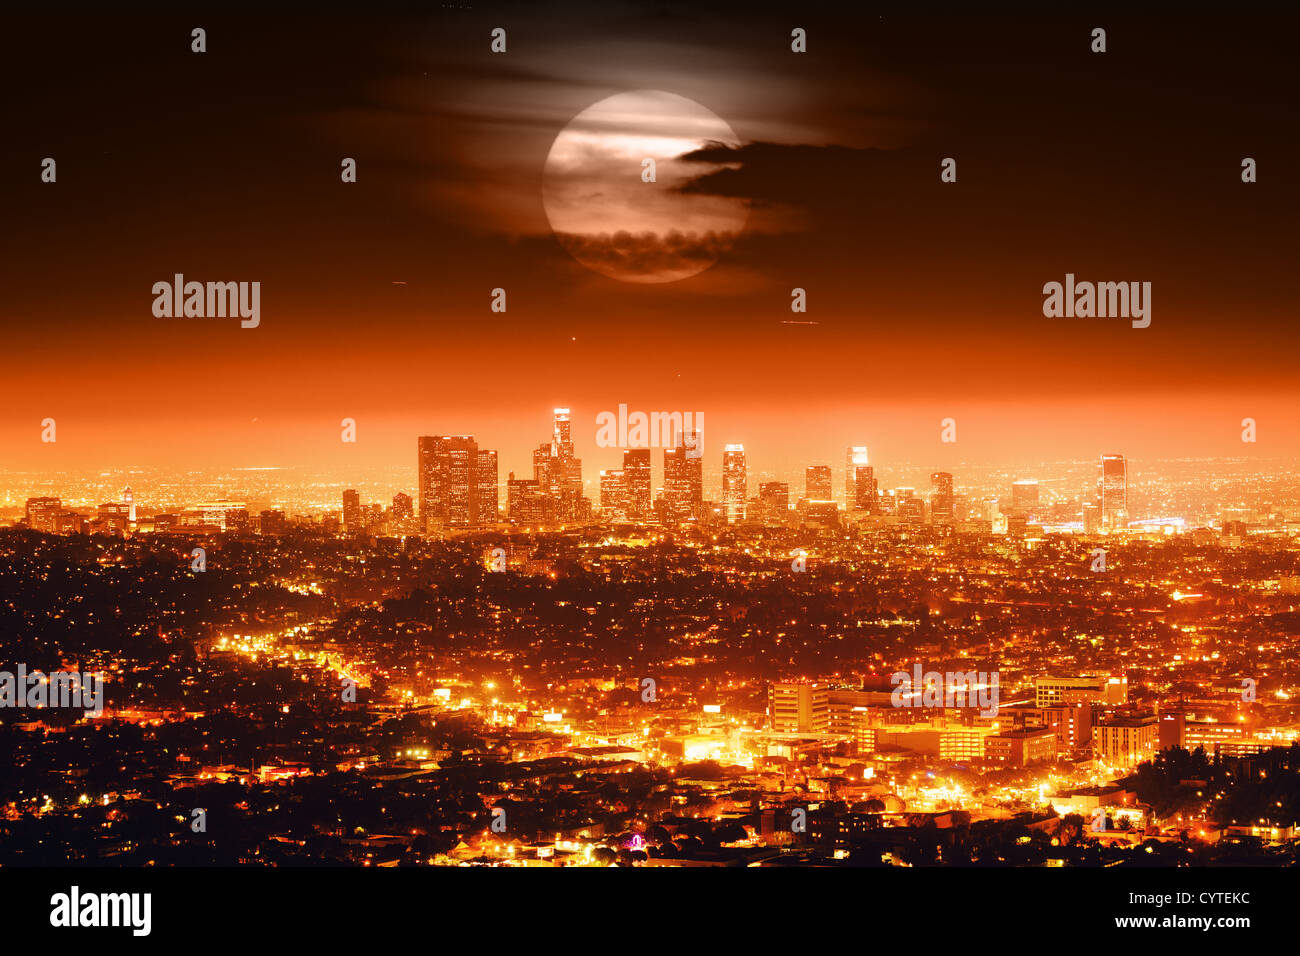 Dramatic full moon over Los Angeles skyline at night. - Stock Image